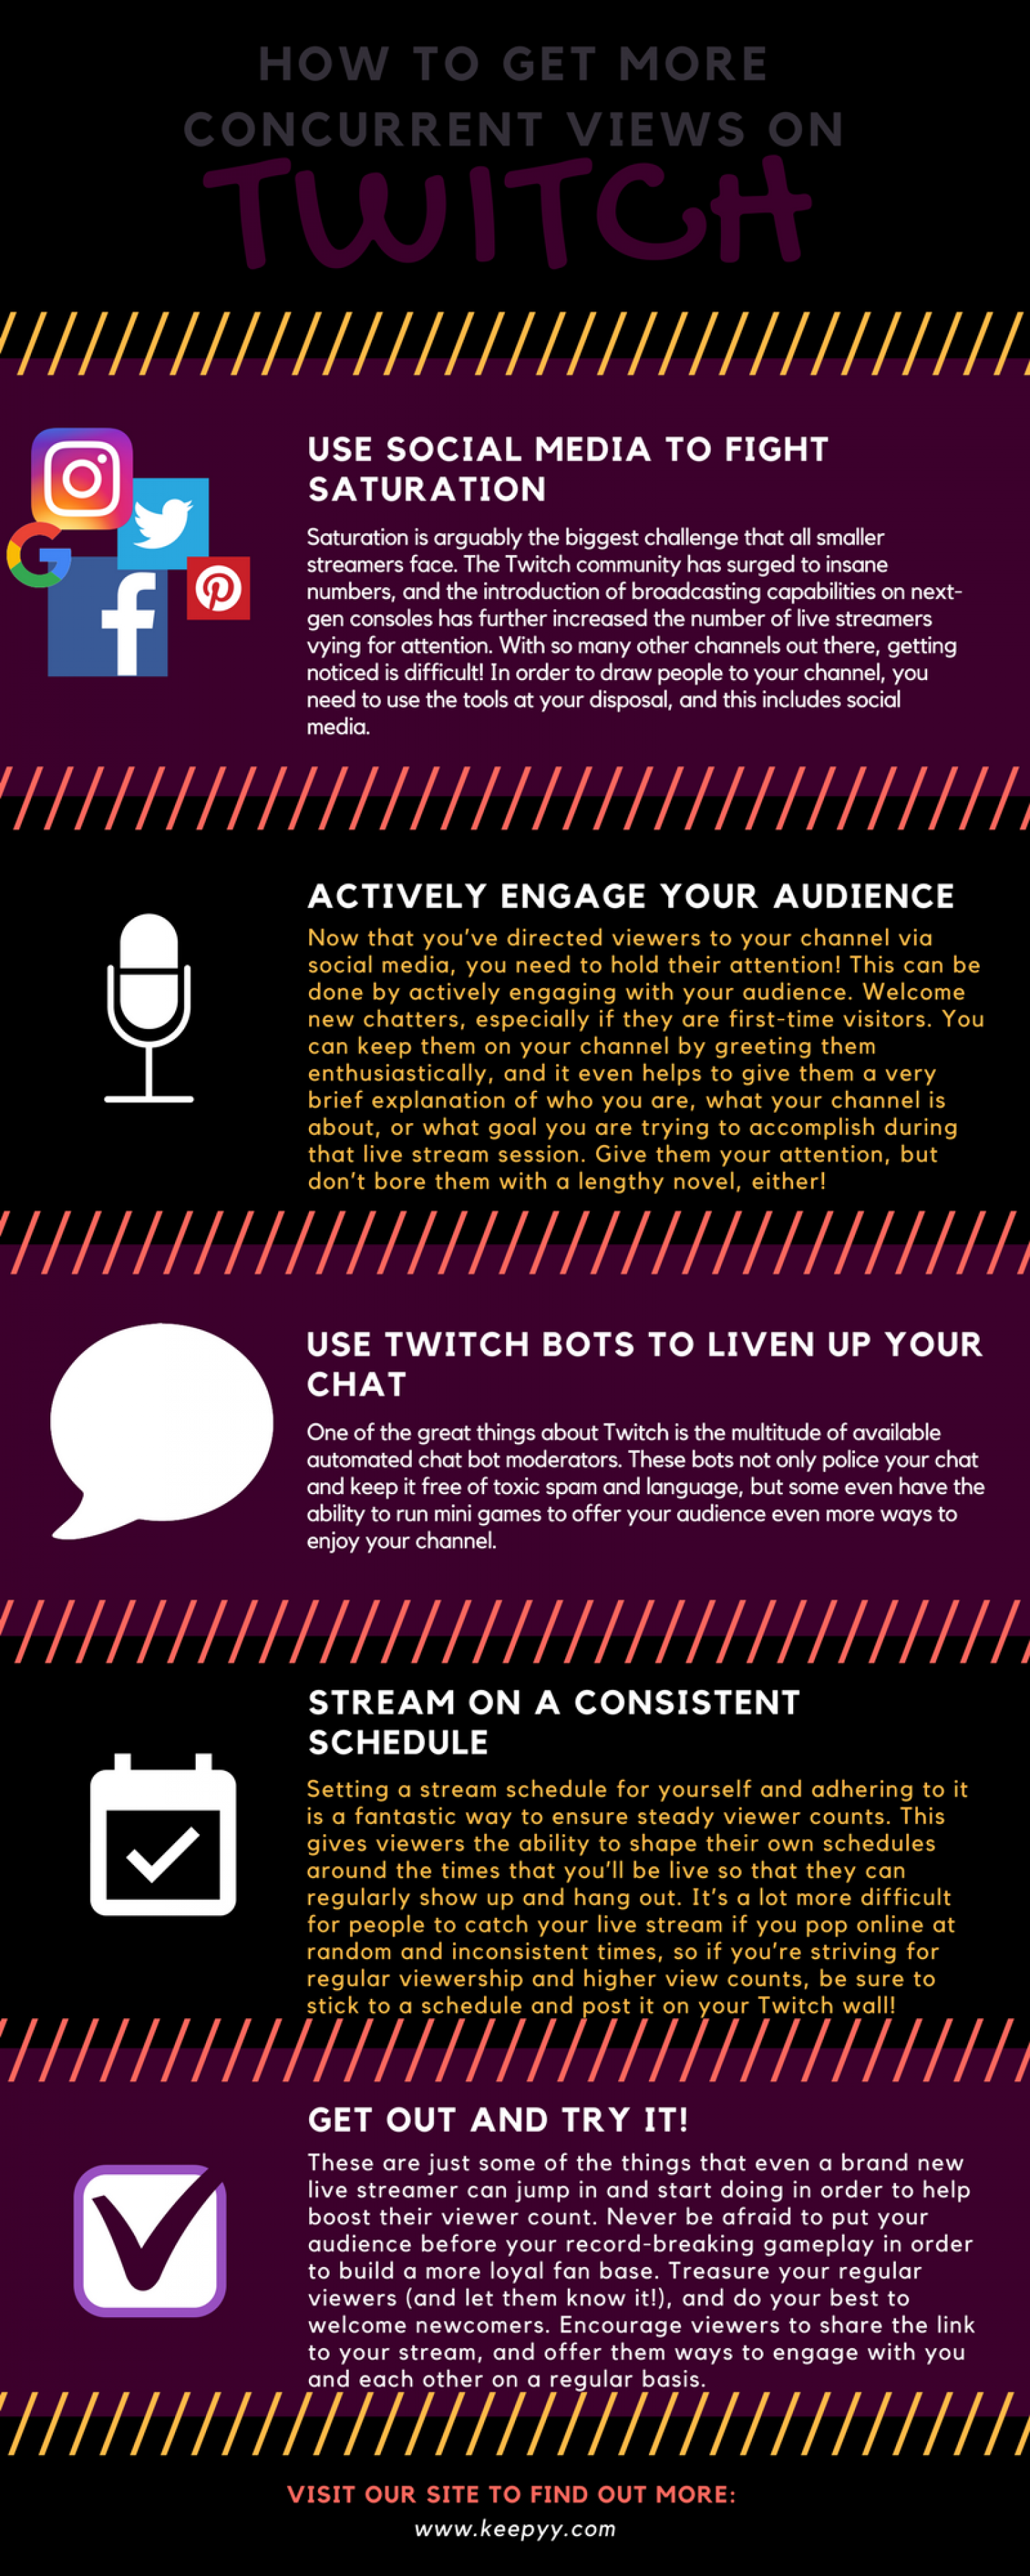 How to Get More Concurrent Views on Twitch? Infographic